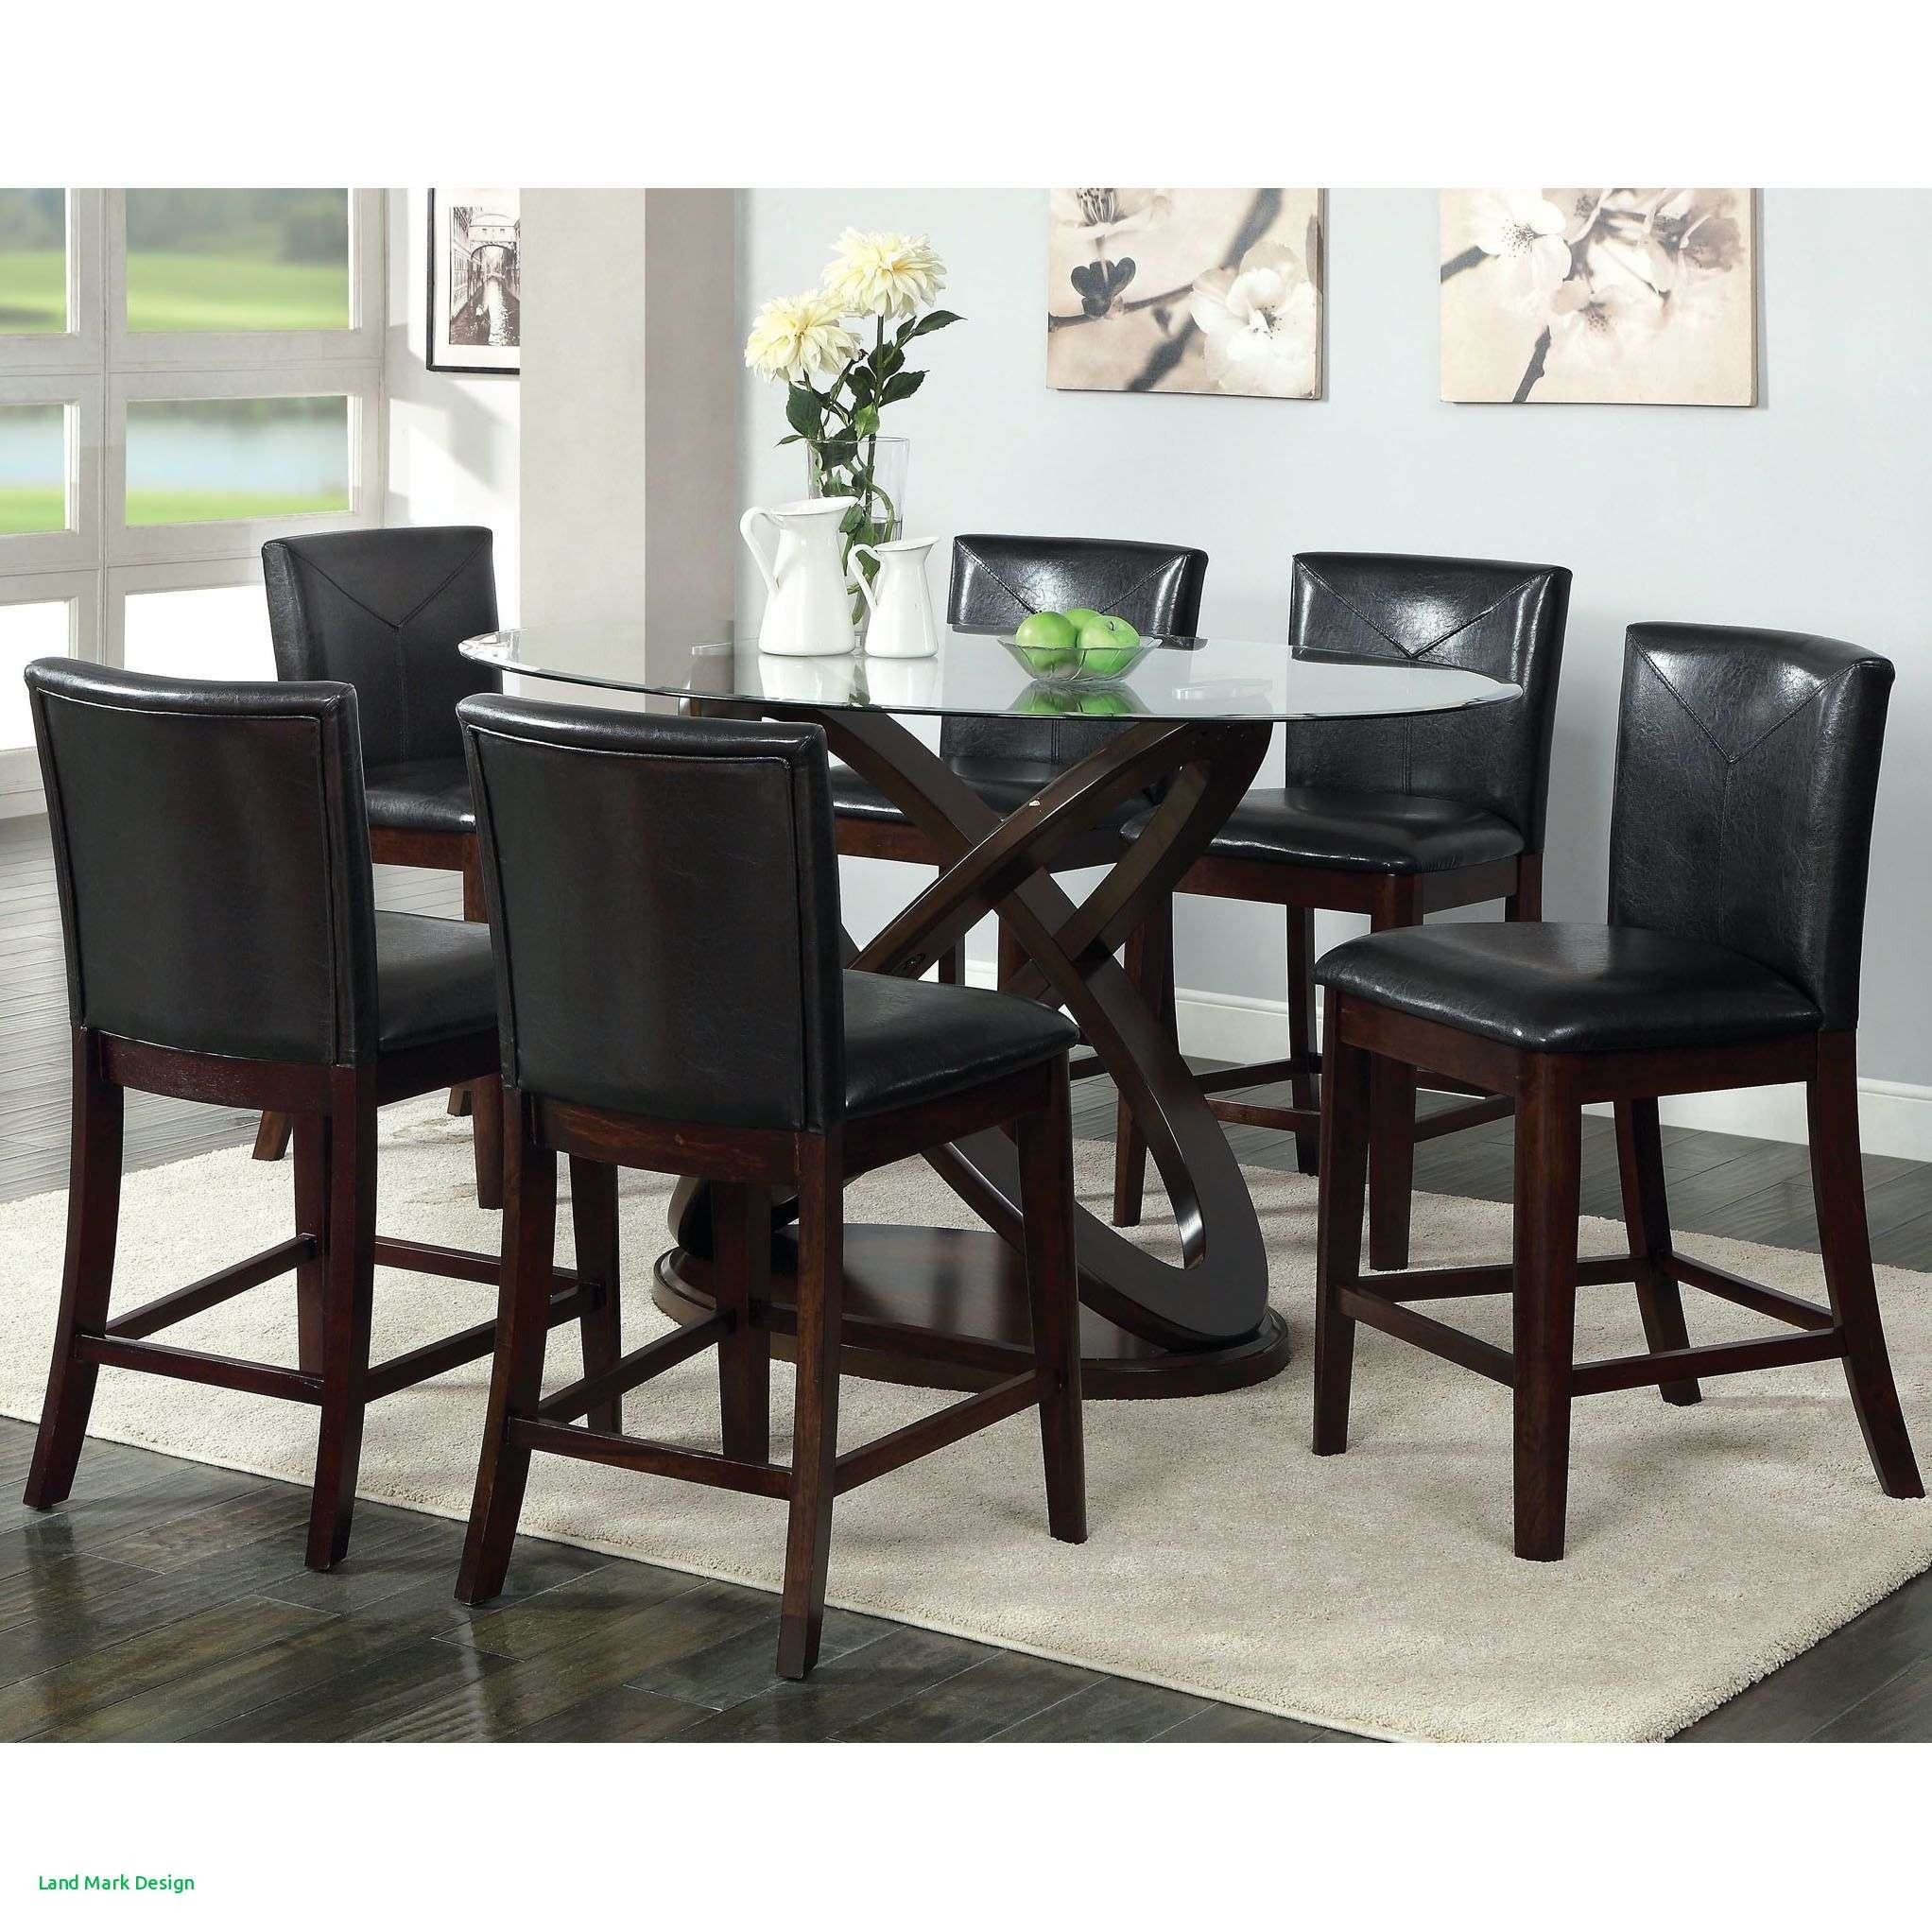 Dining Room Tables Indianapolis New Unique Dining Room Tables Layjao